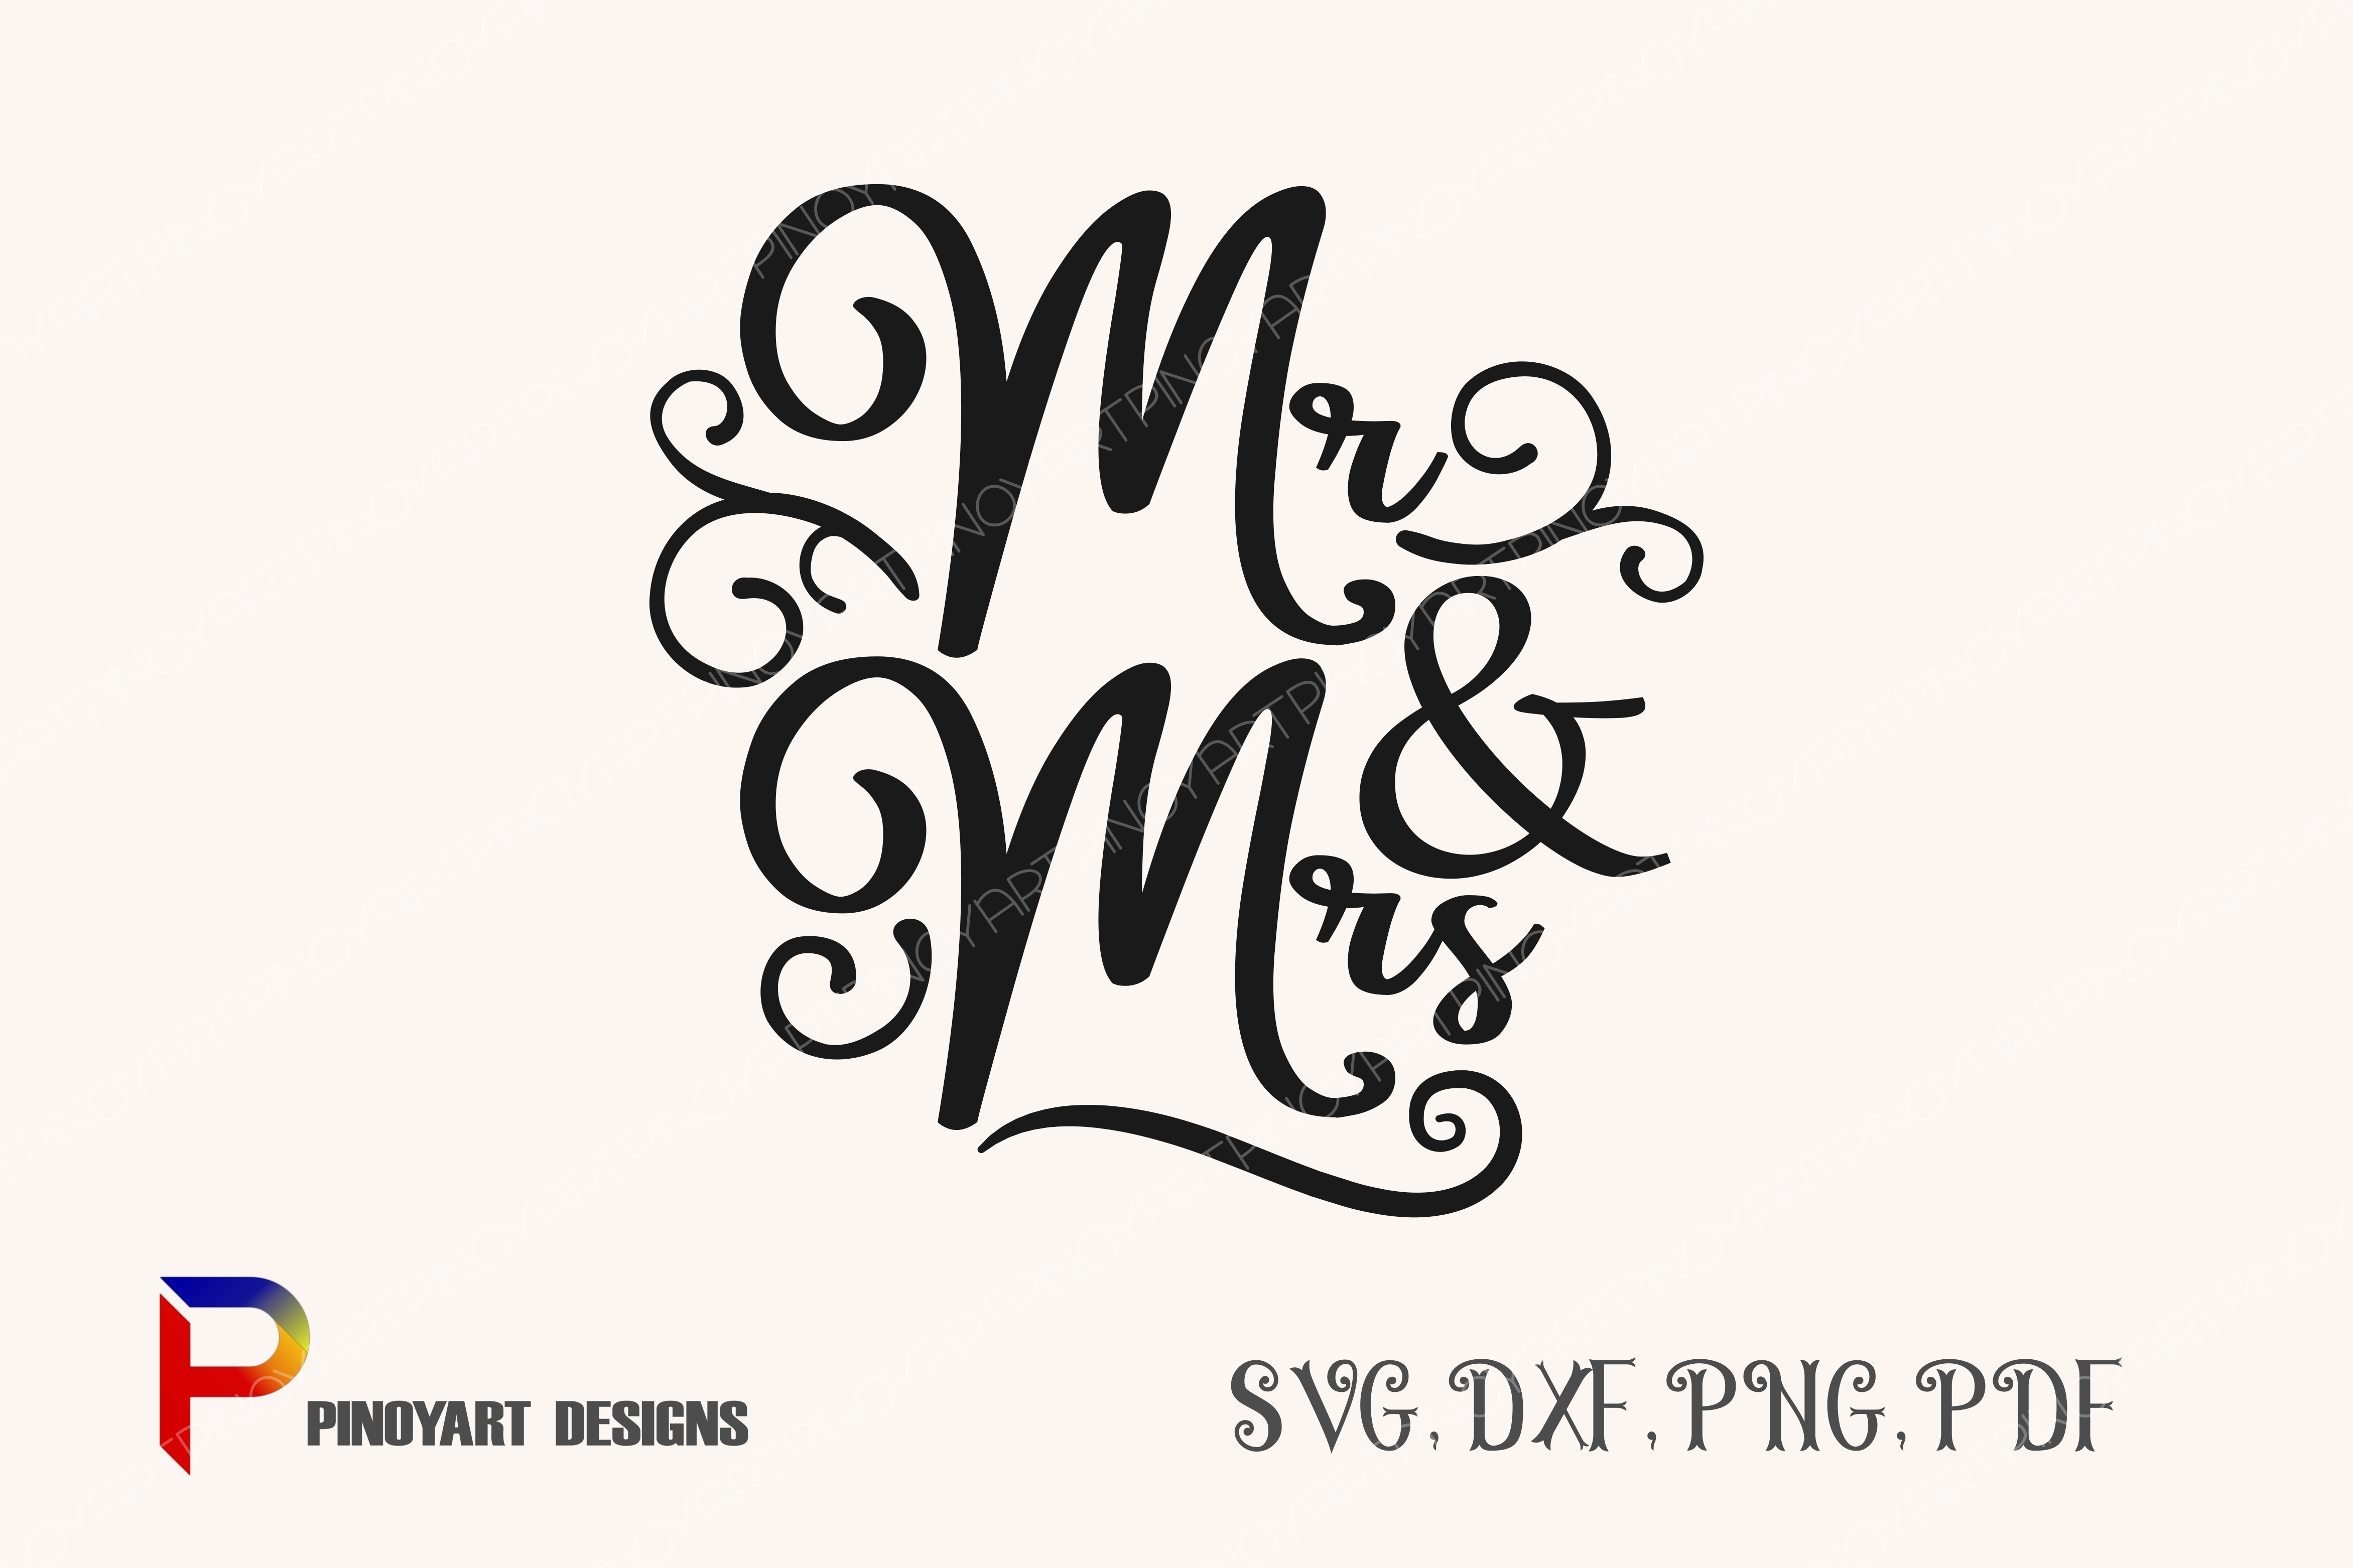 Mr and mrs svg, mr and mrs svg file, mr and mrs clip art, couple svg,  wedding svg, mr and mrs graphics, mr and mrs prints, svg, svg files for  cricut.